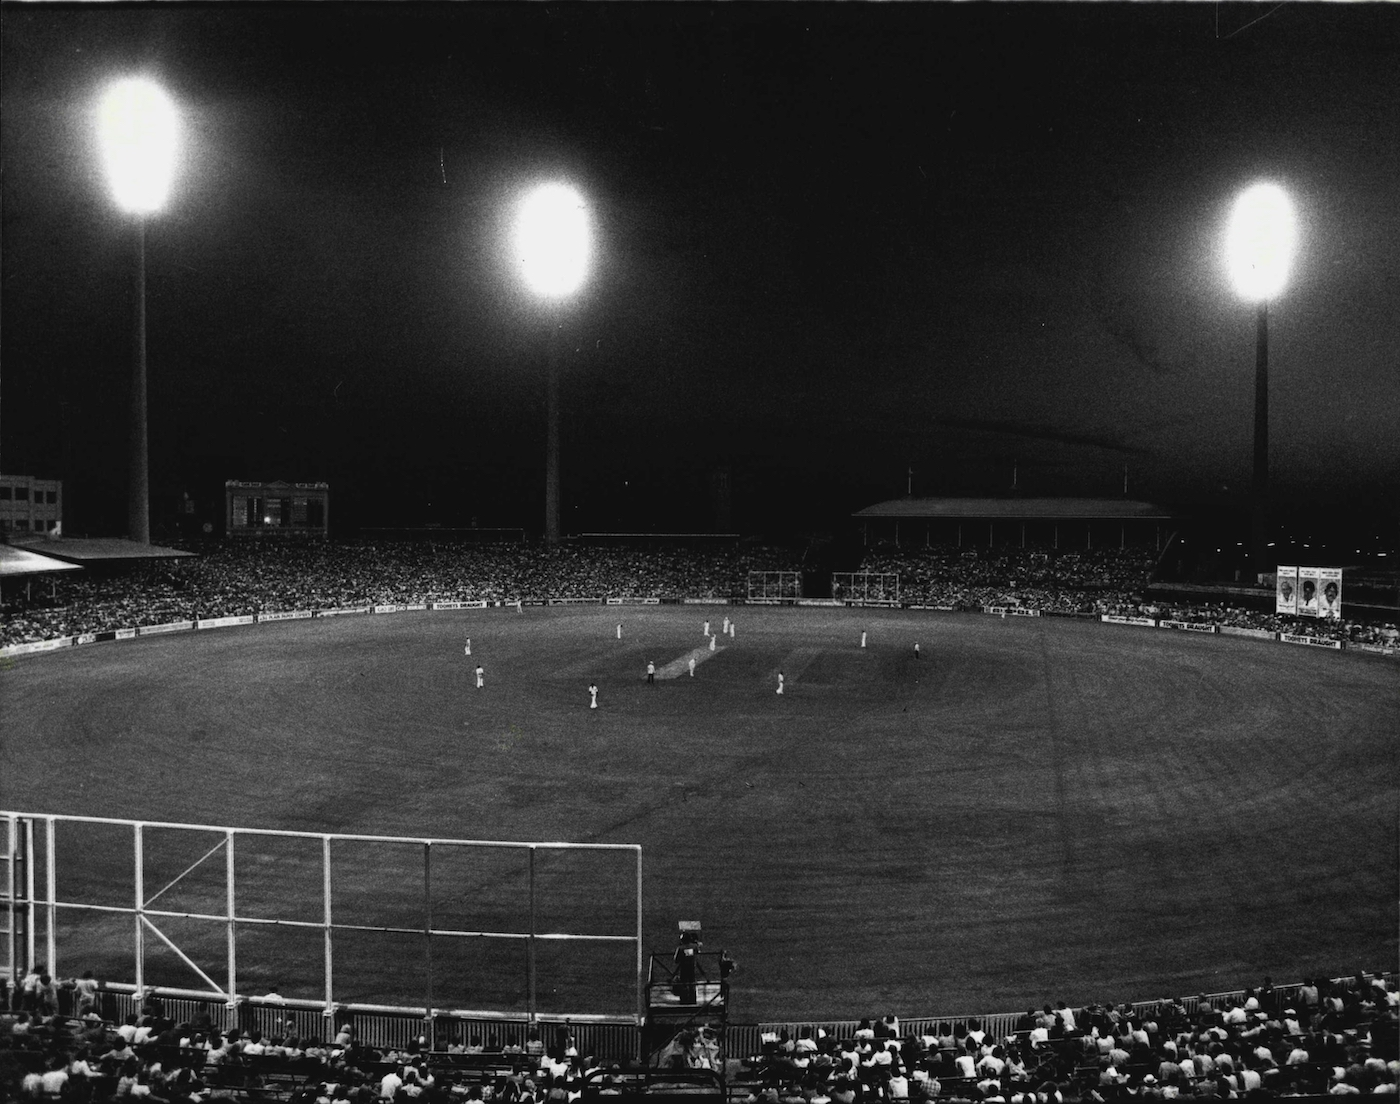 The lights come on at the SCG for the first day-night match, between Australia and West Indies, in November 1978